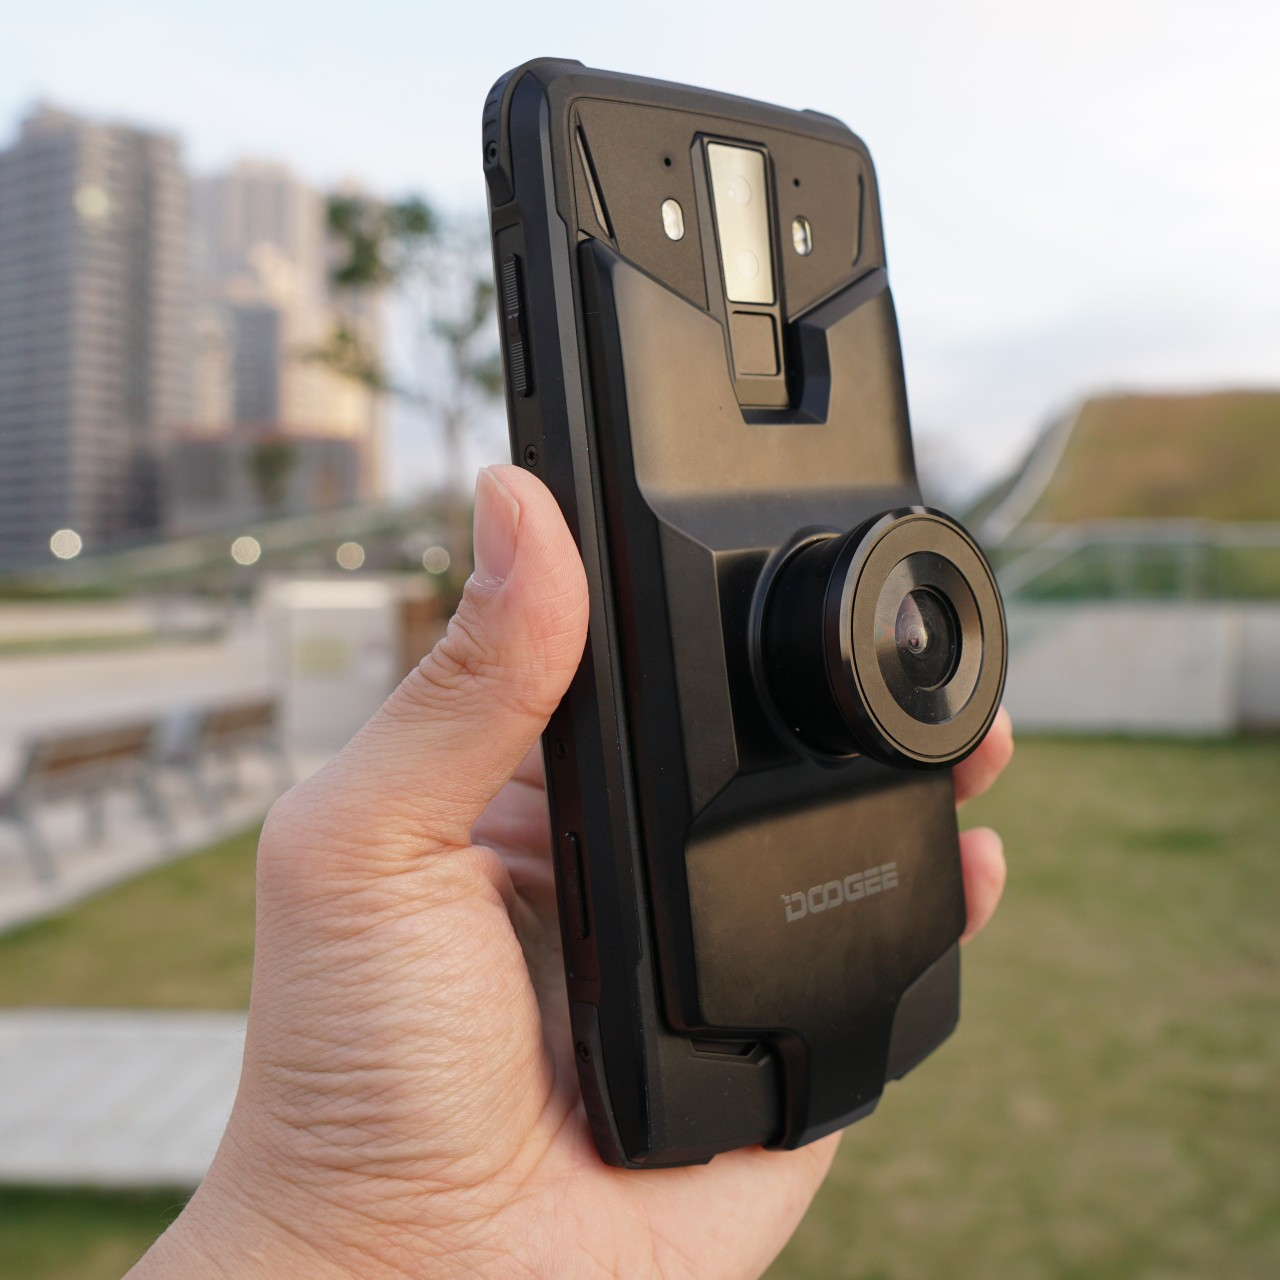 Doogee S90 modular phone turns into night vision camera, walkie